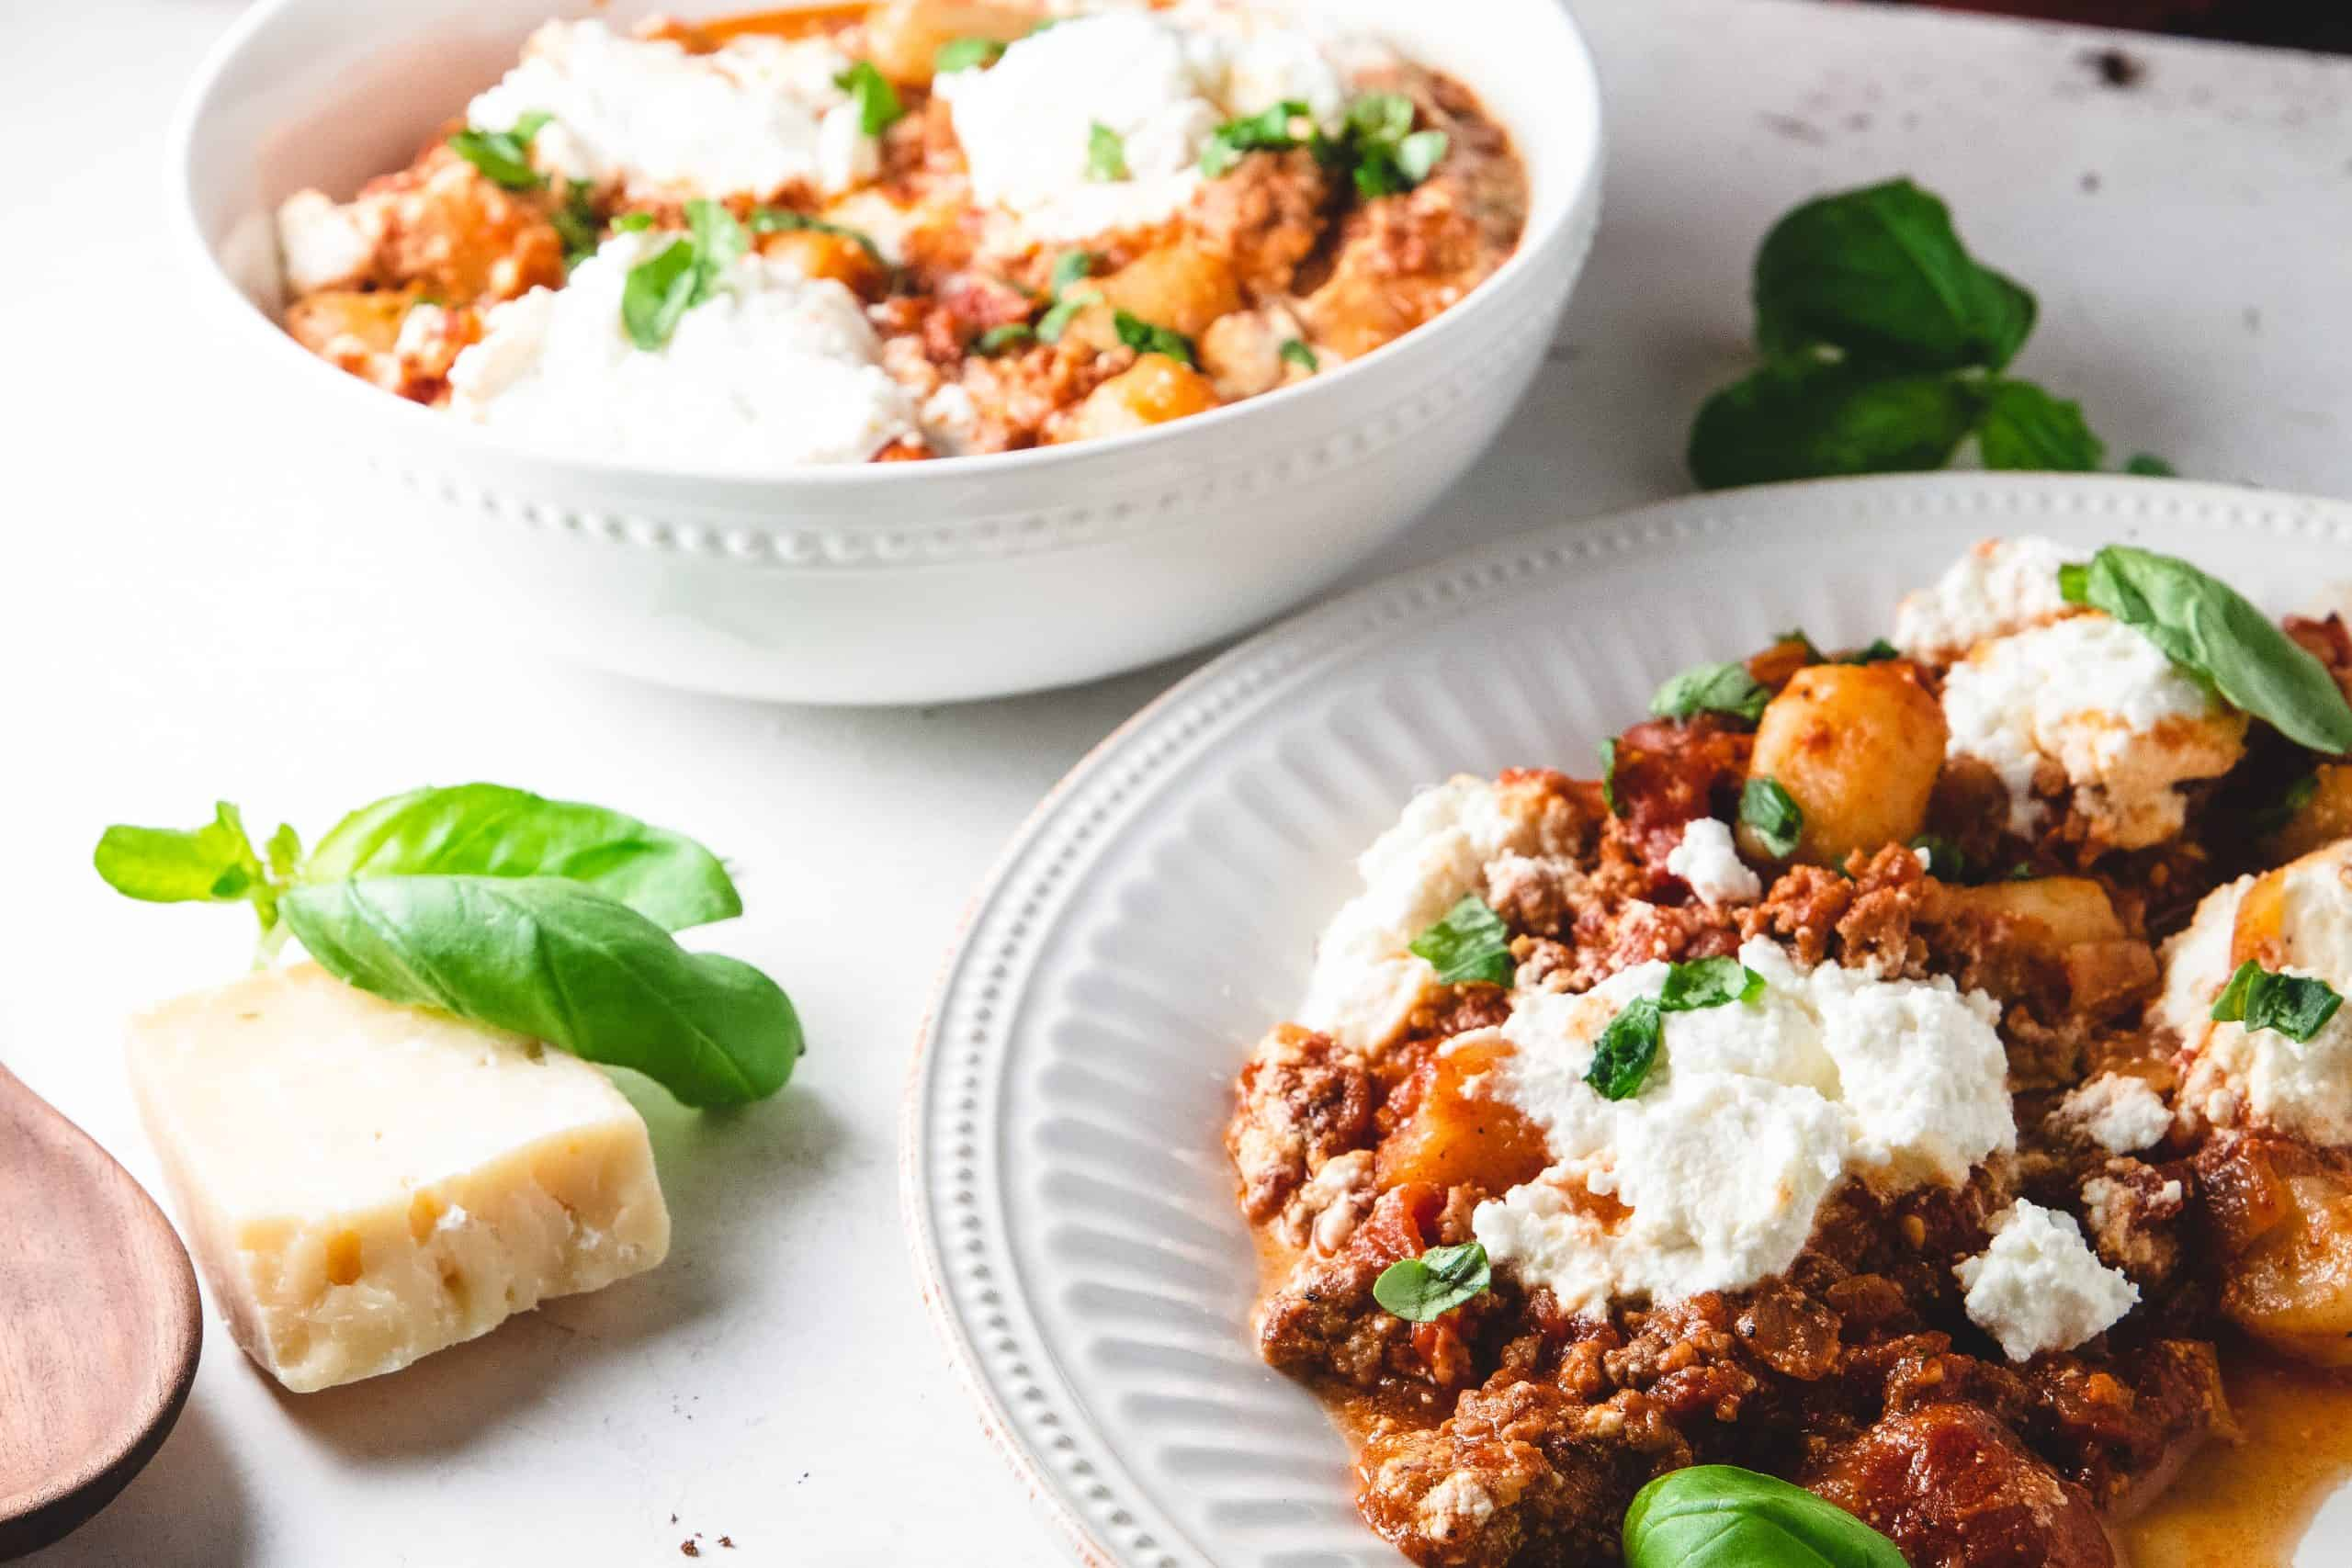 Plate and Bowl of pasta with parmesan cheese, basil and ricotta